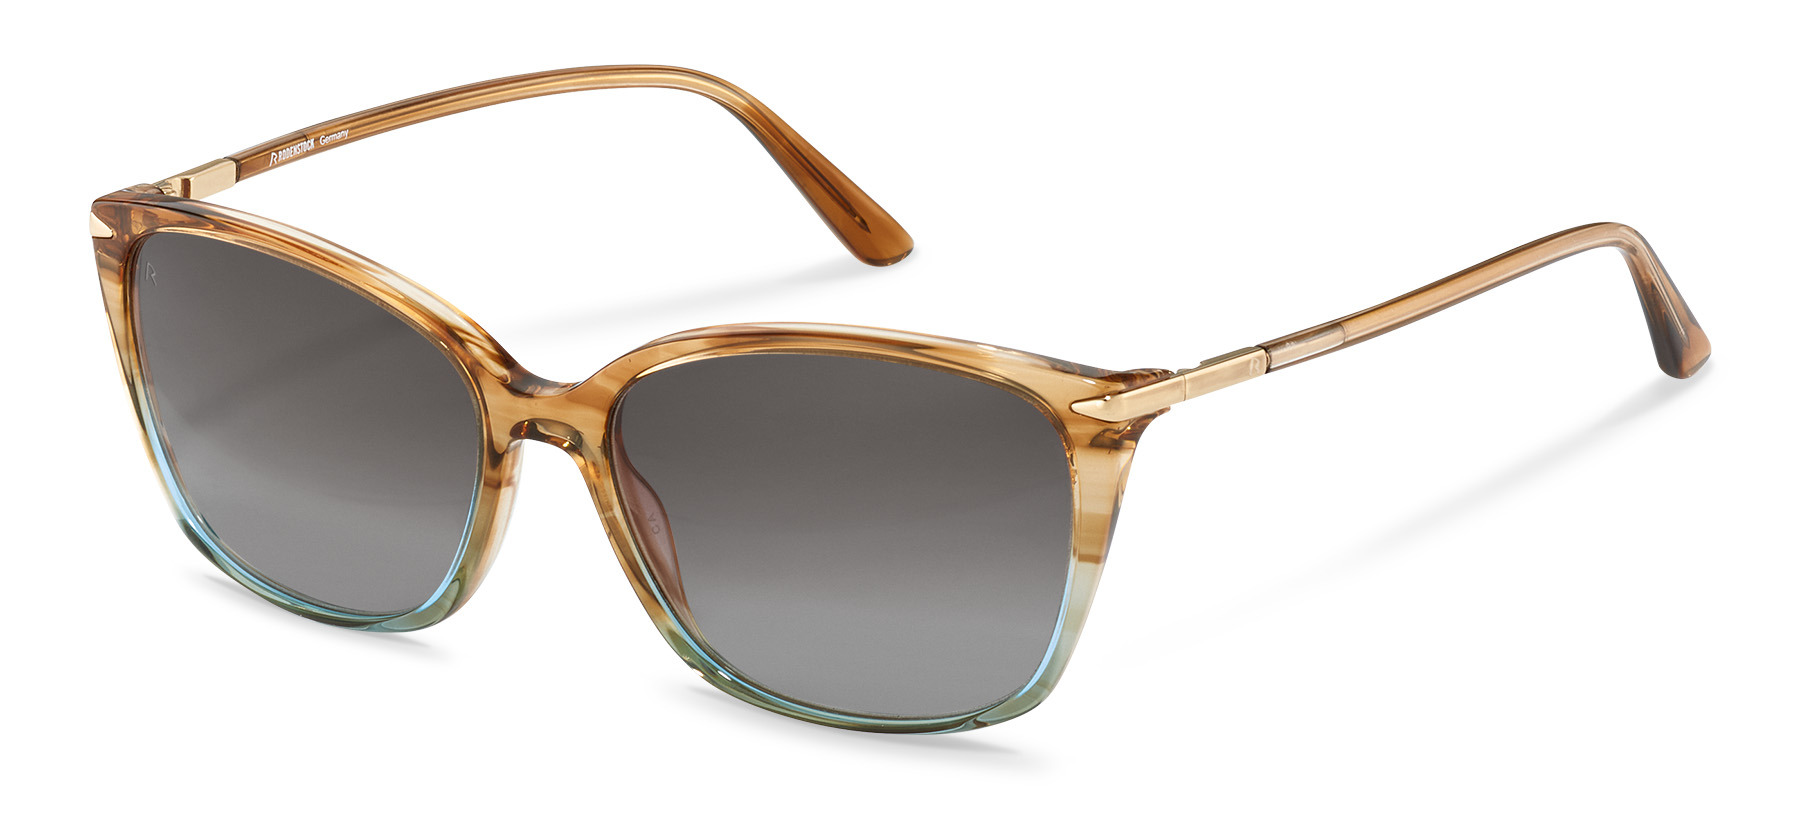 Rodenstock-Sunglasses-R3320-havanagreengradient/gold